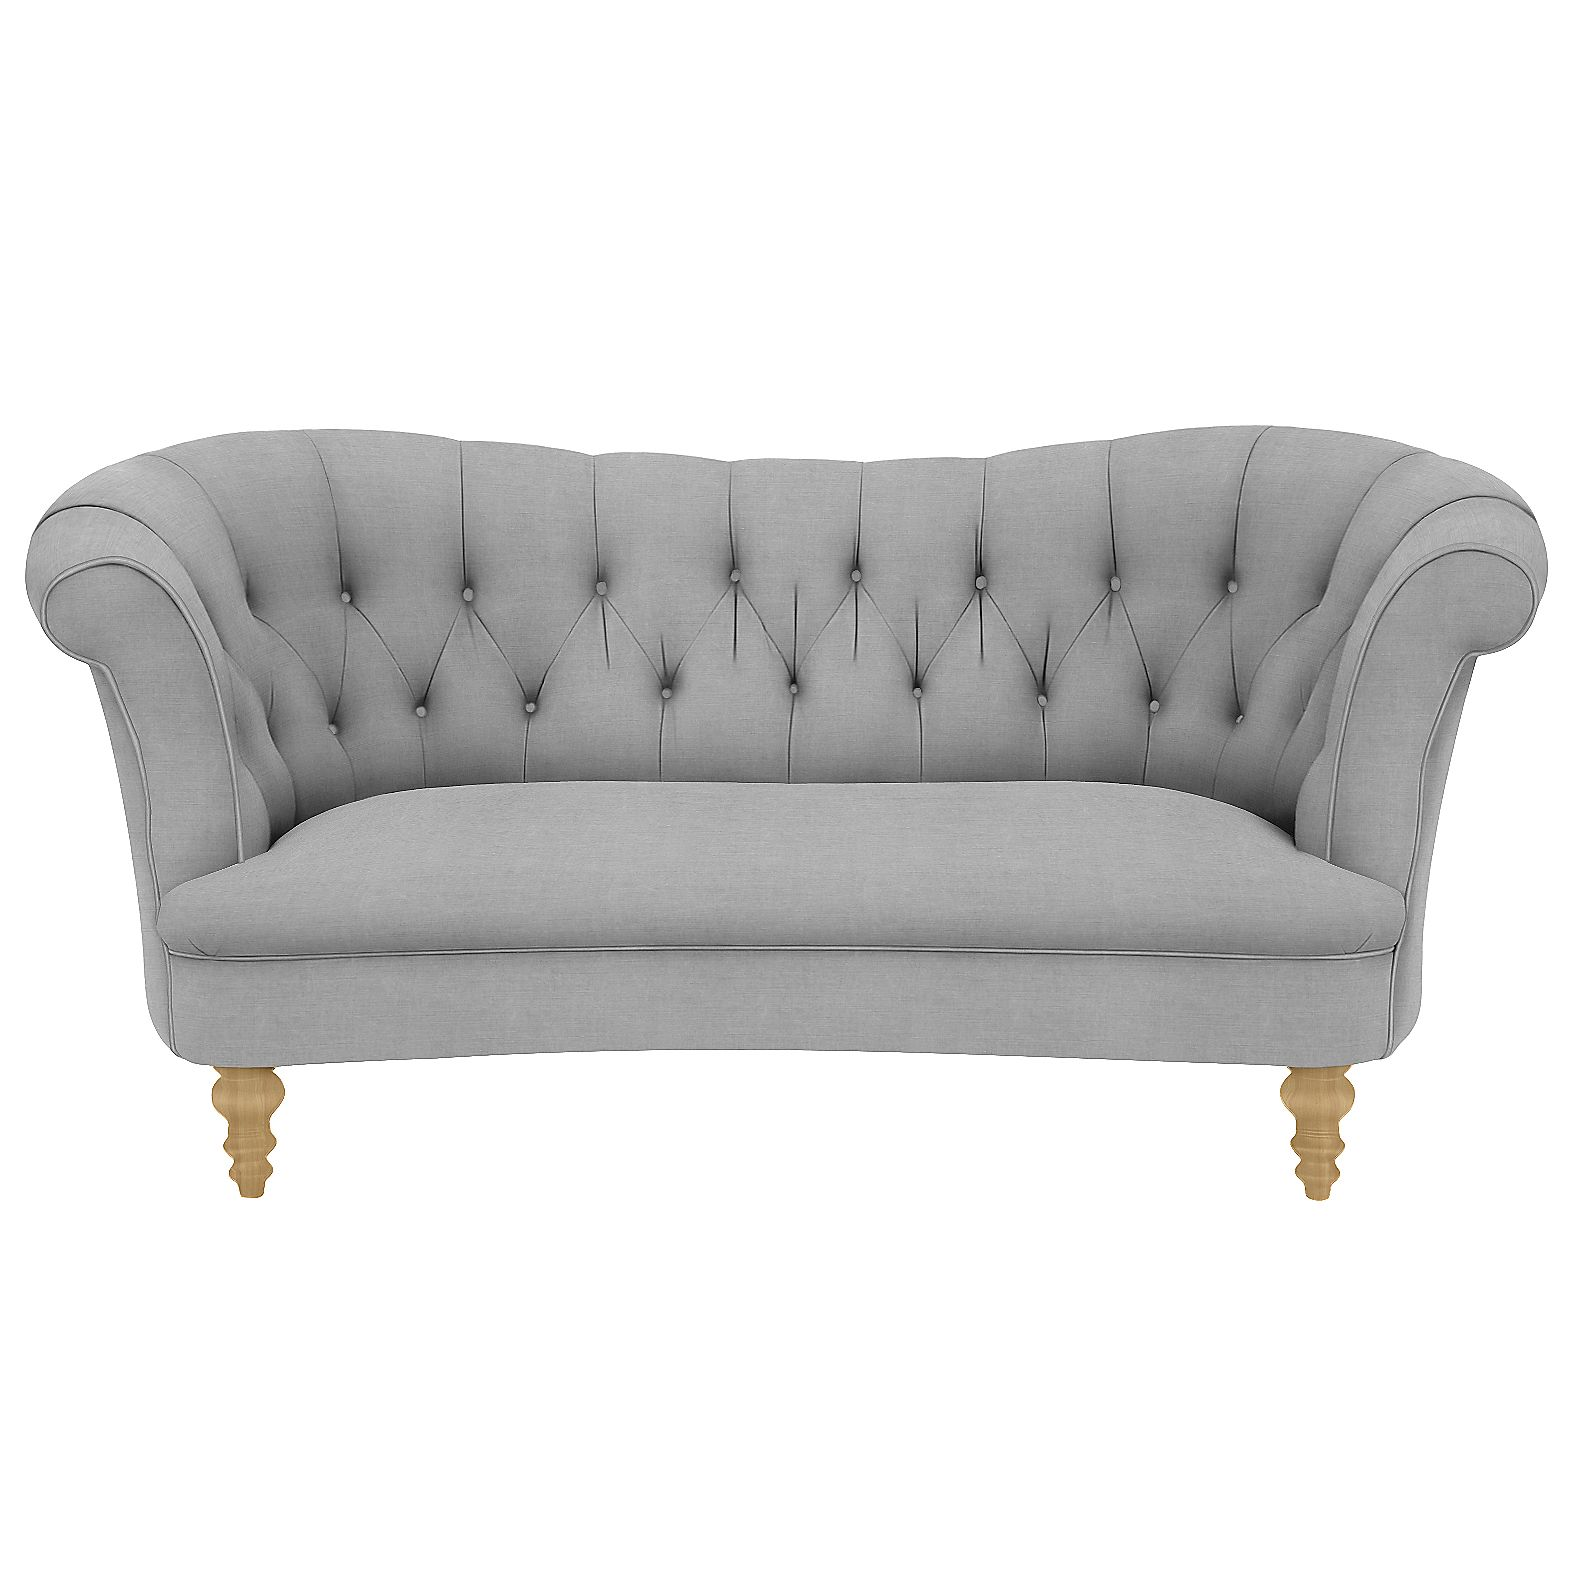 John Lewis Hayworth Medium Chesterfield Sofa